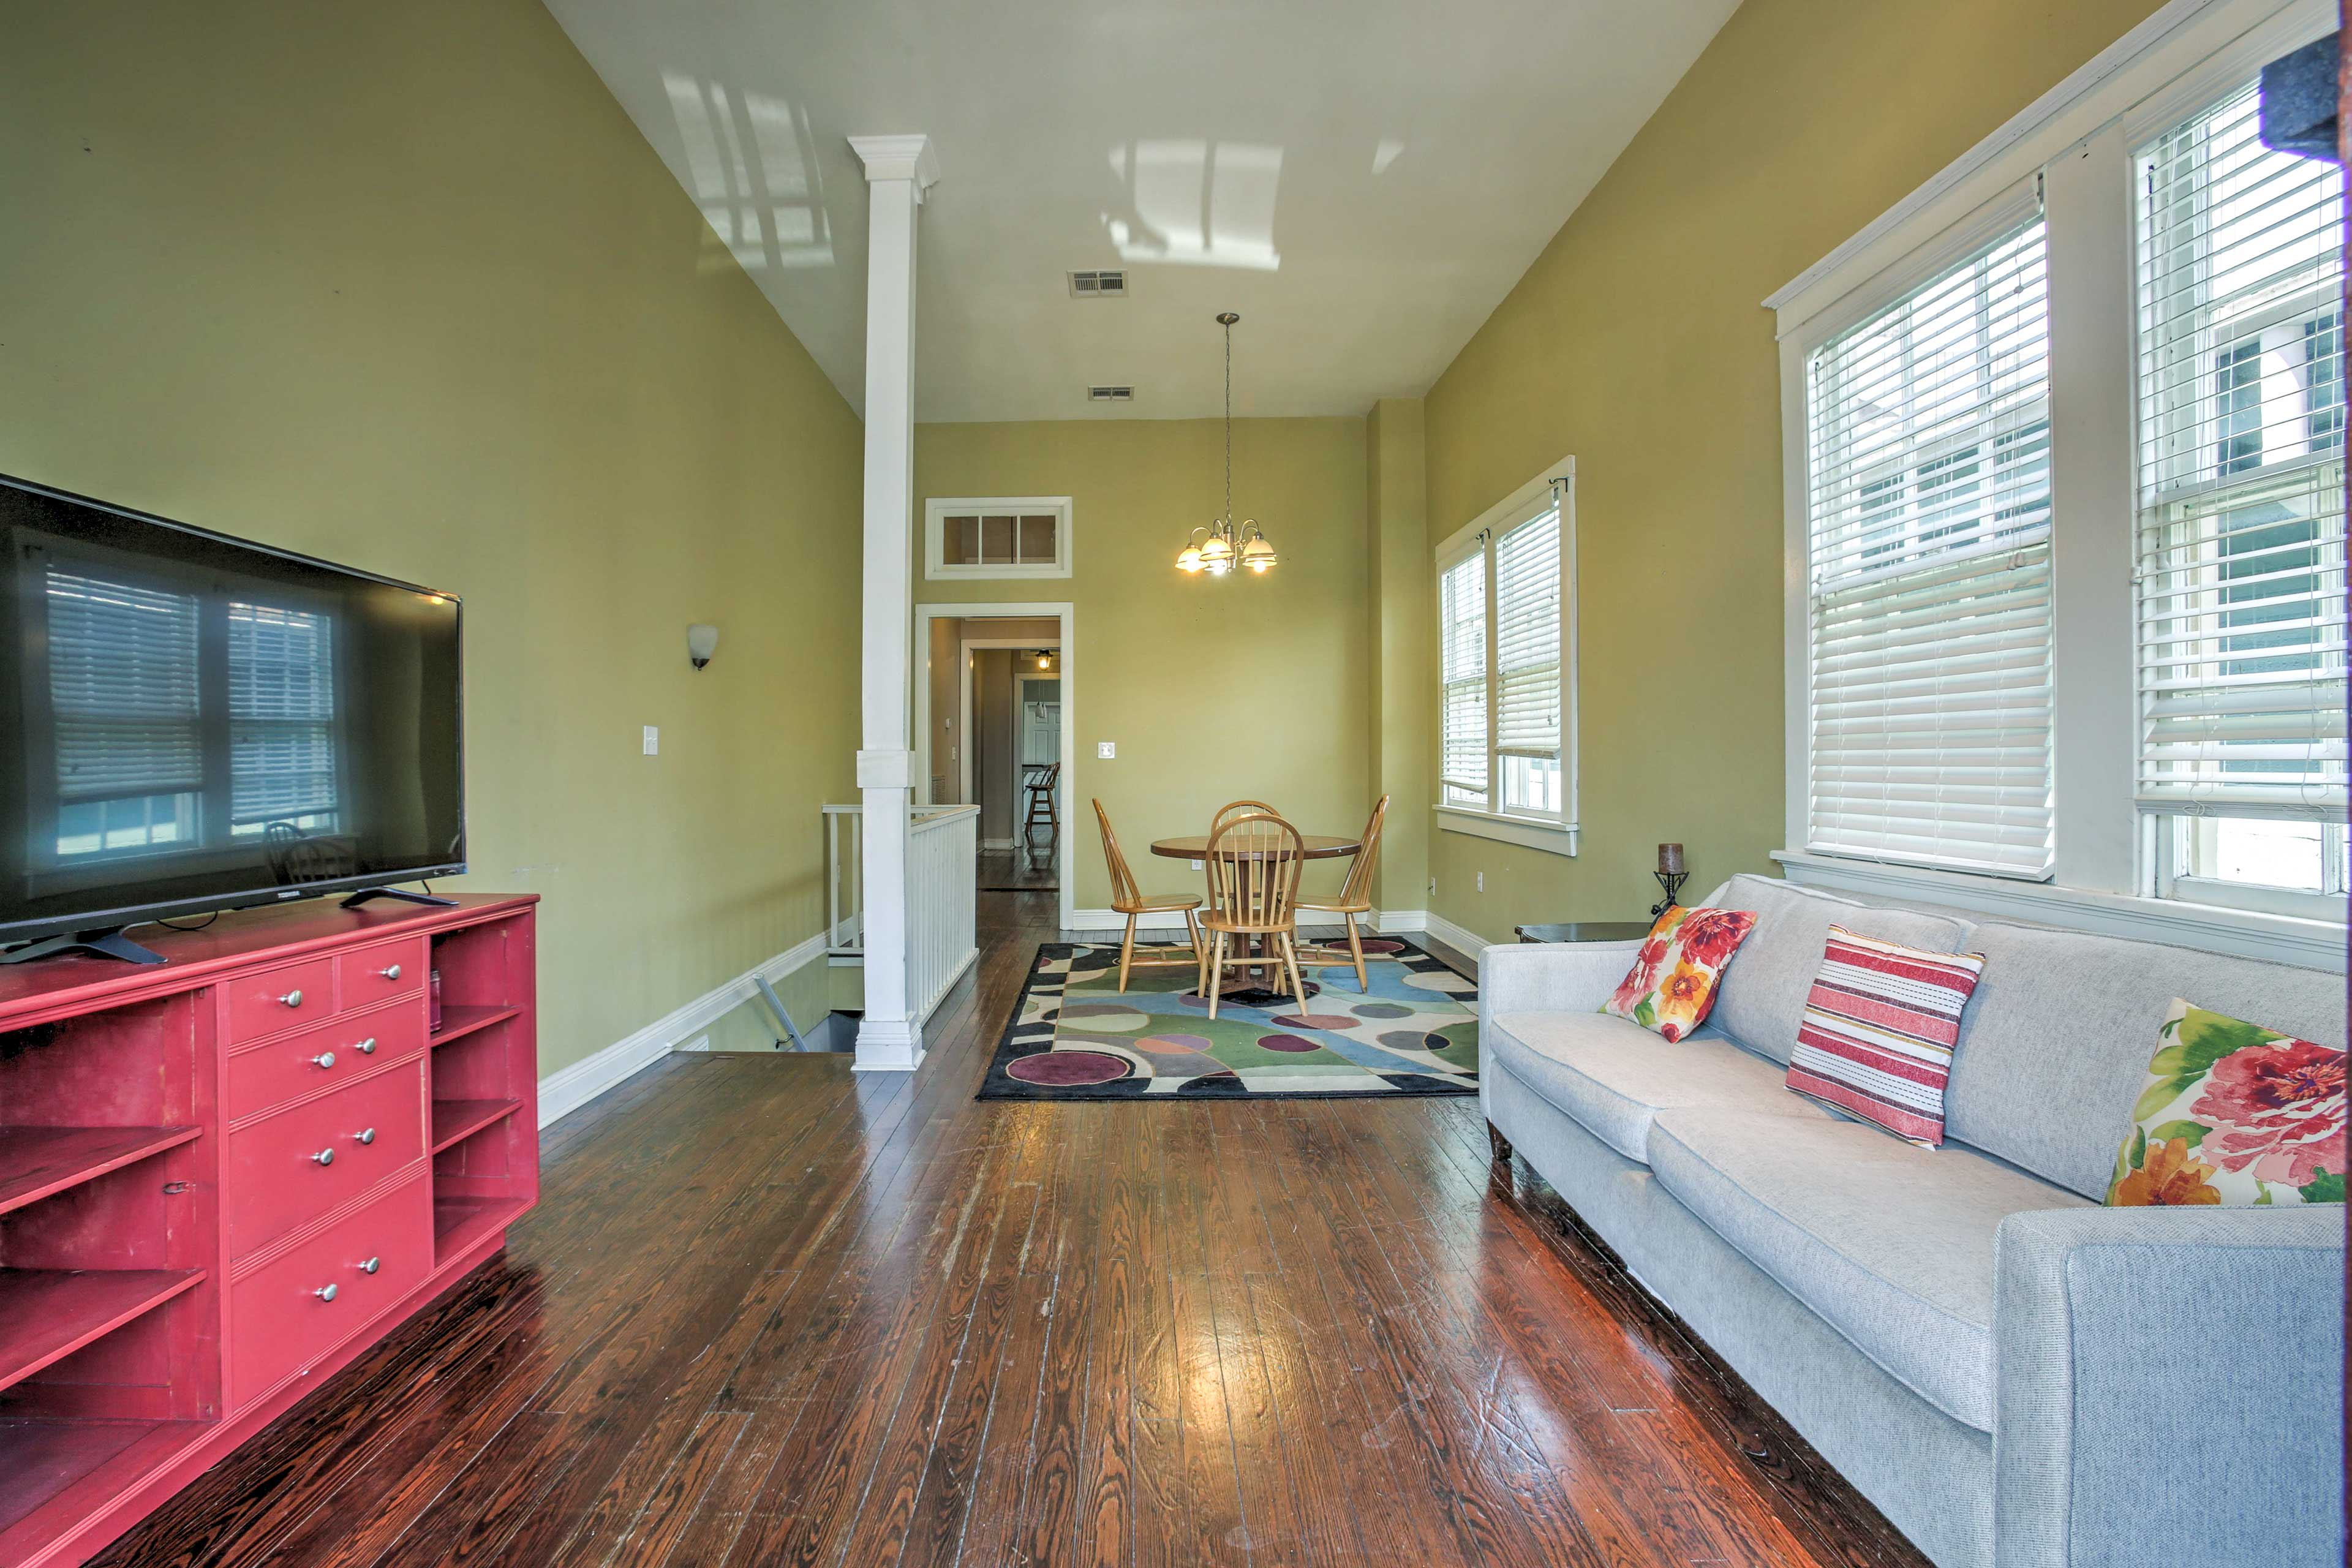 Relax in the updated, spacious interior set in the heart of the Garden District.